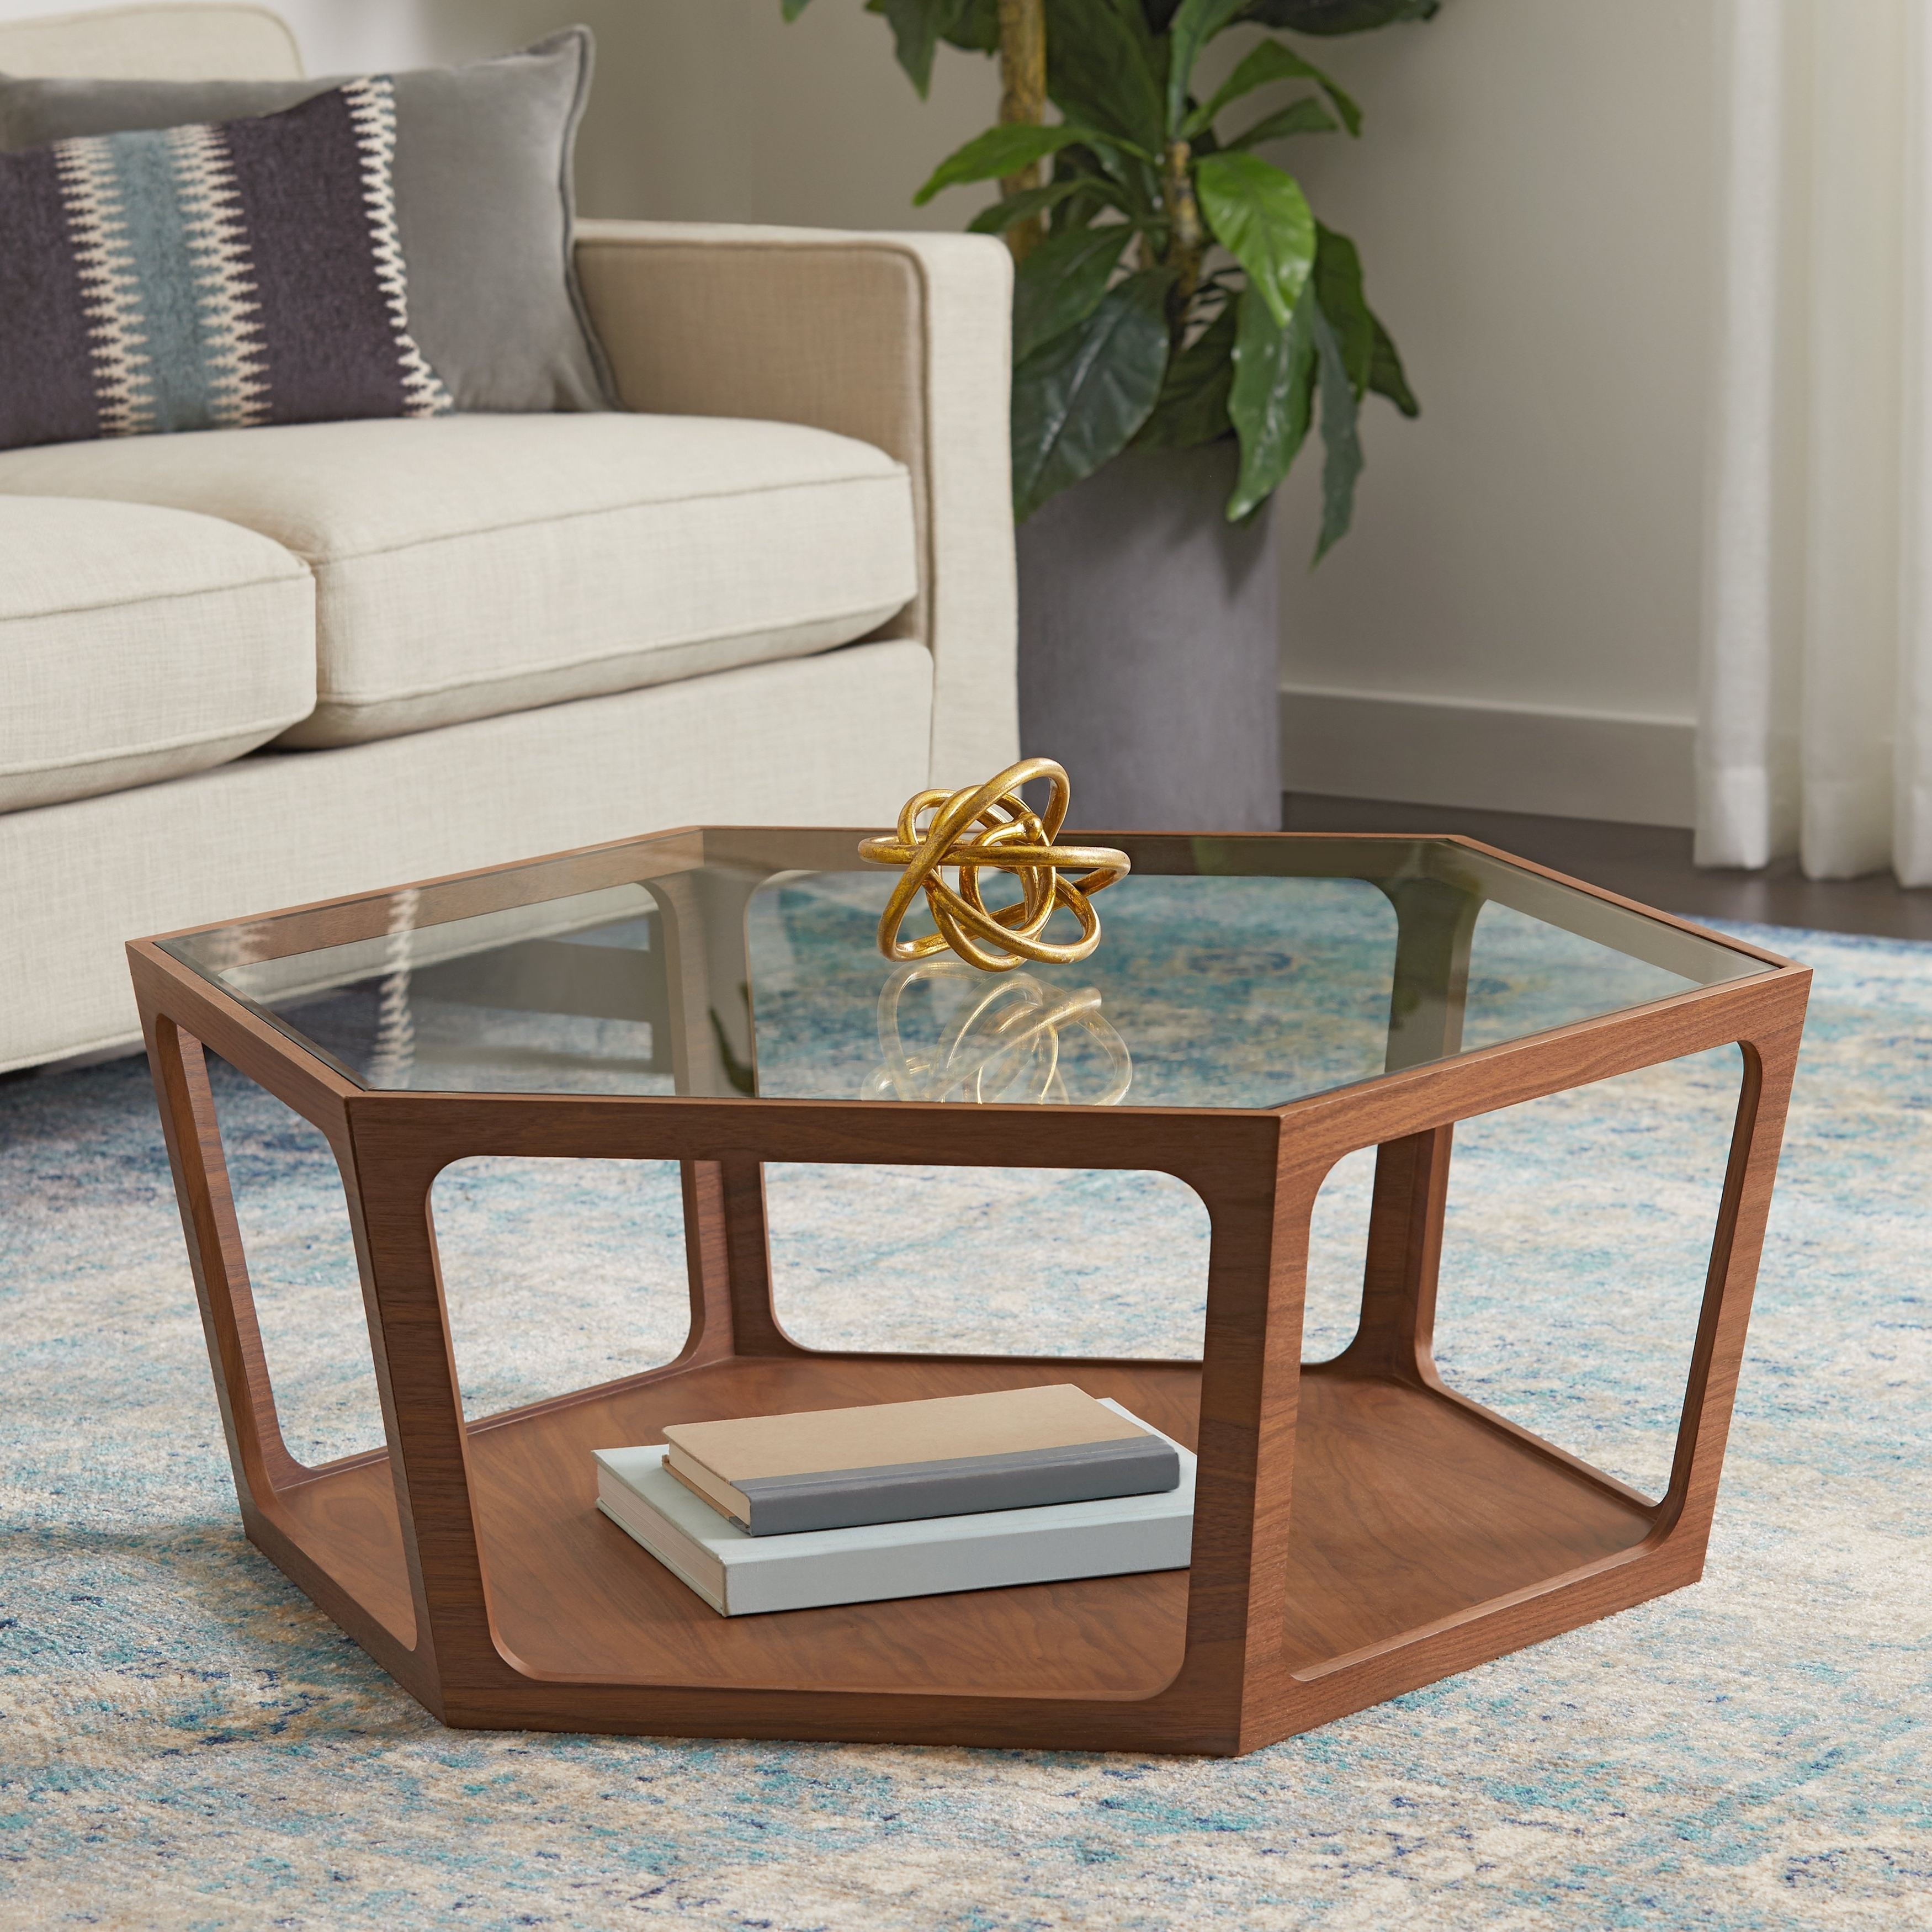 Most Recent Verona Cocktail Tables For Shop Abbyson Verona Walnut Coffee Table – On Sale – Free Shipping (View 14 of 20)